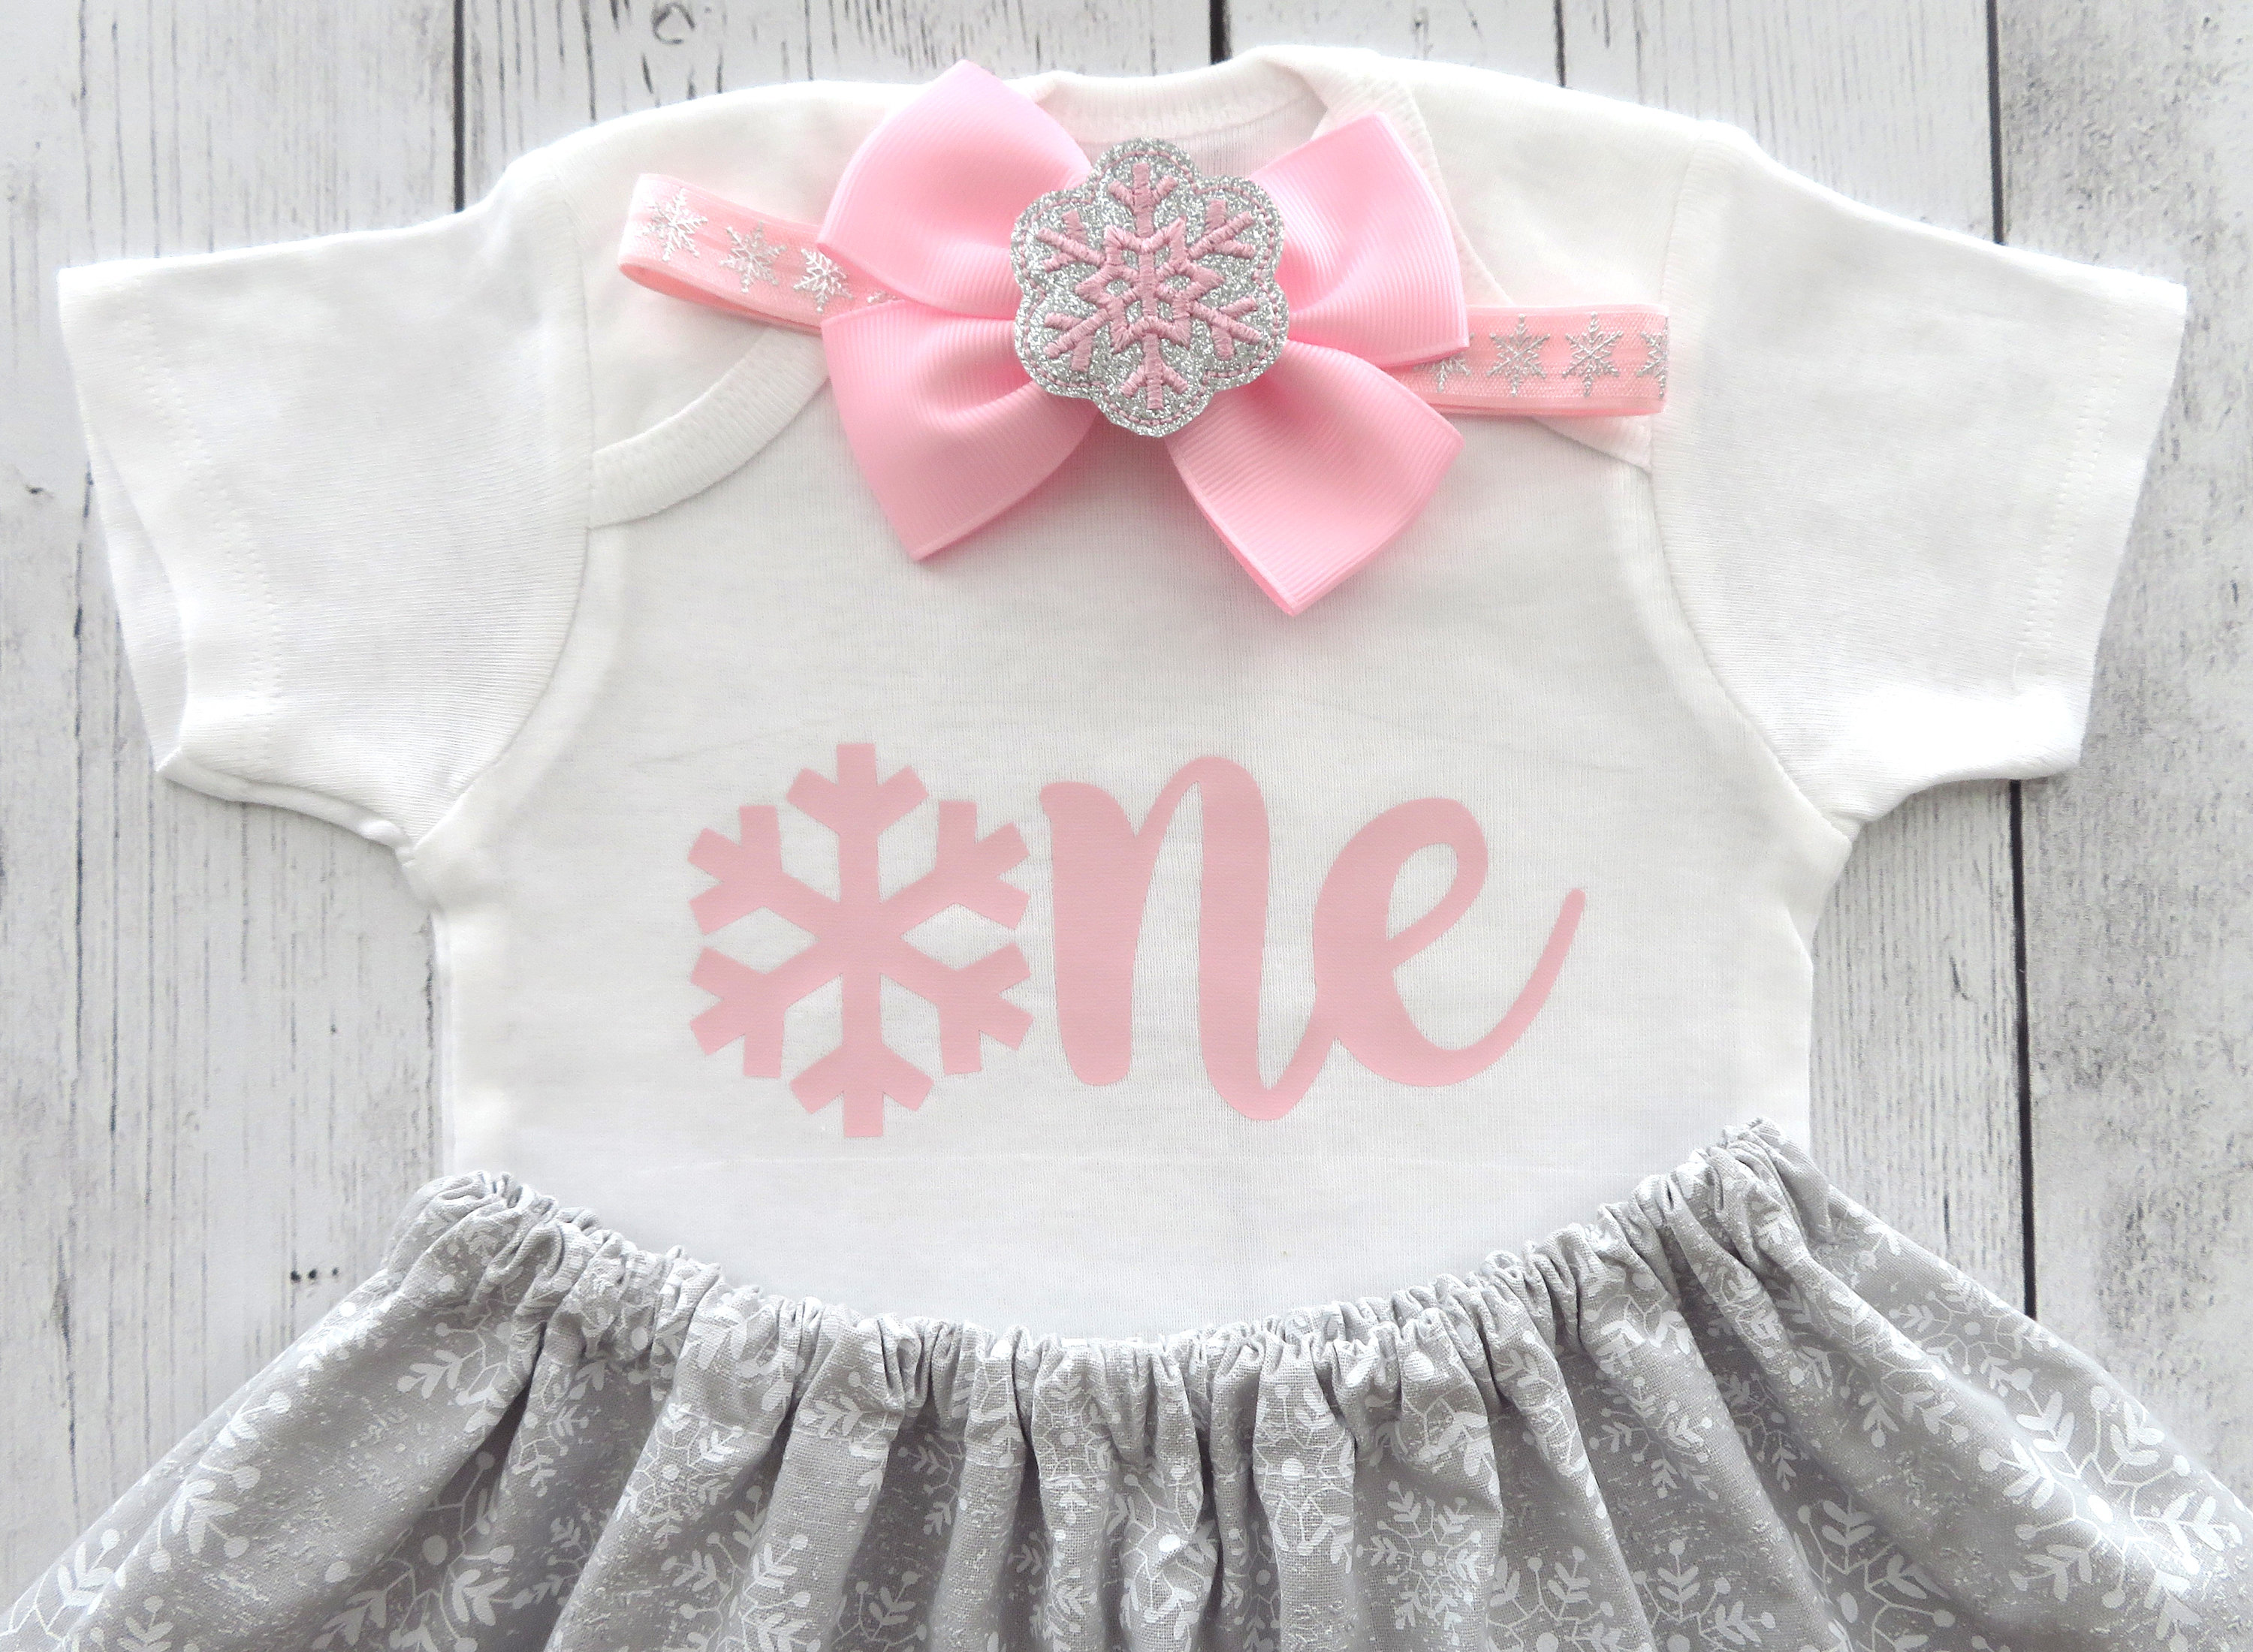 SALE! - Winter ONEderland First Birthday Outfit in pink and gray - girl 1st birthday outfit, winter birthday, snow much fun to be one girl